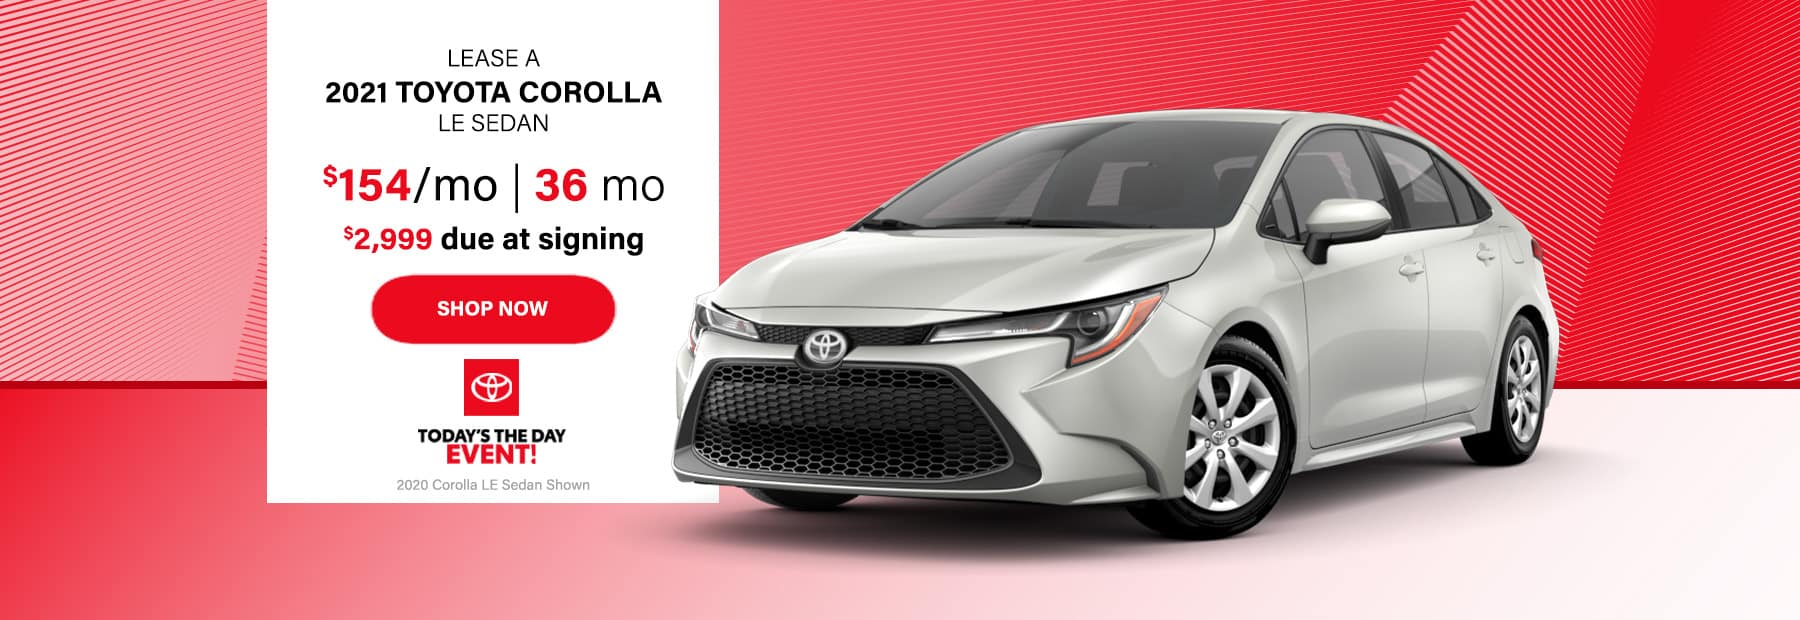 Lease a 2021 Toyota Corolla LE Sedan for $154/mo. for 36 mos. with $2,999 down